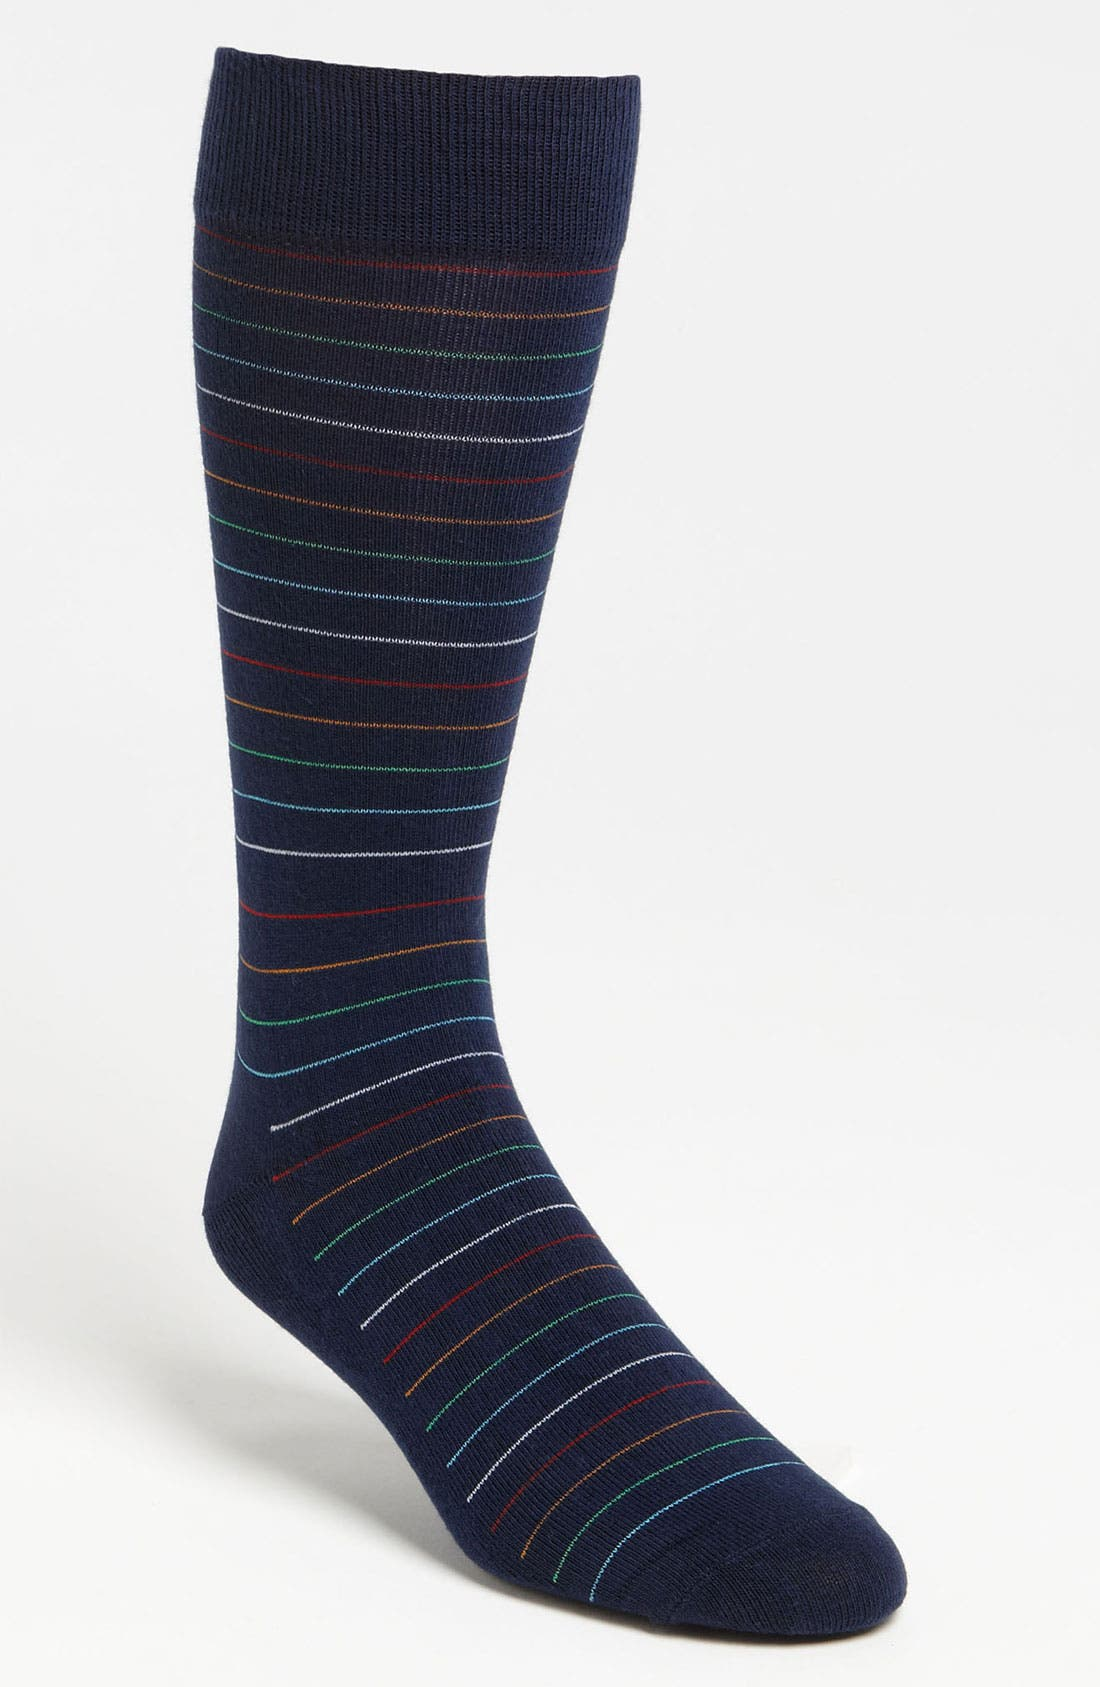 Main Image - Happy Socks Patterned Combed Cotton Blend Socks